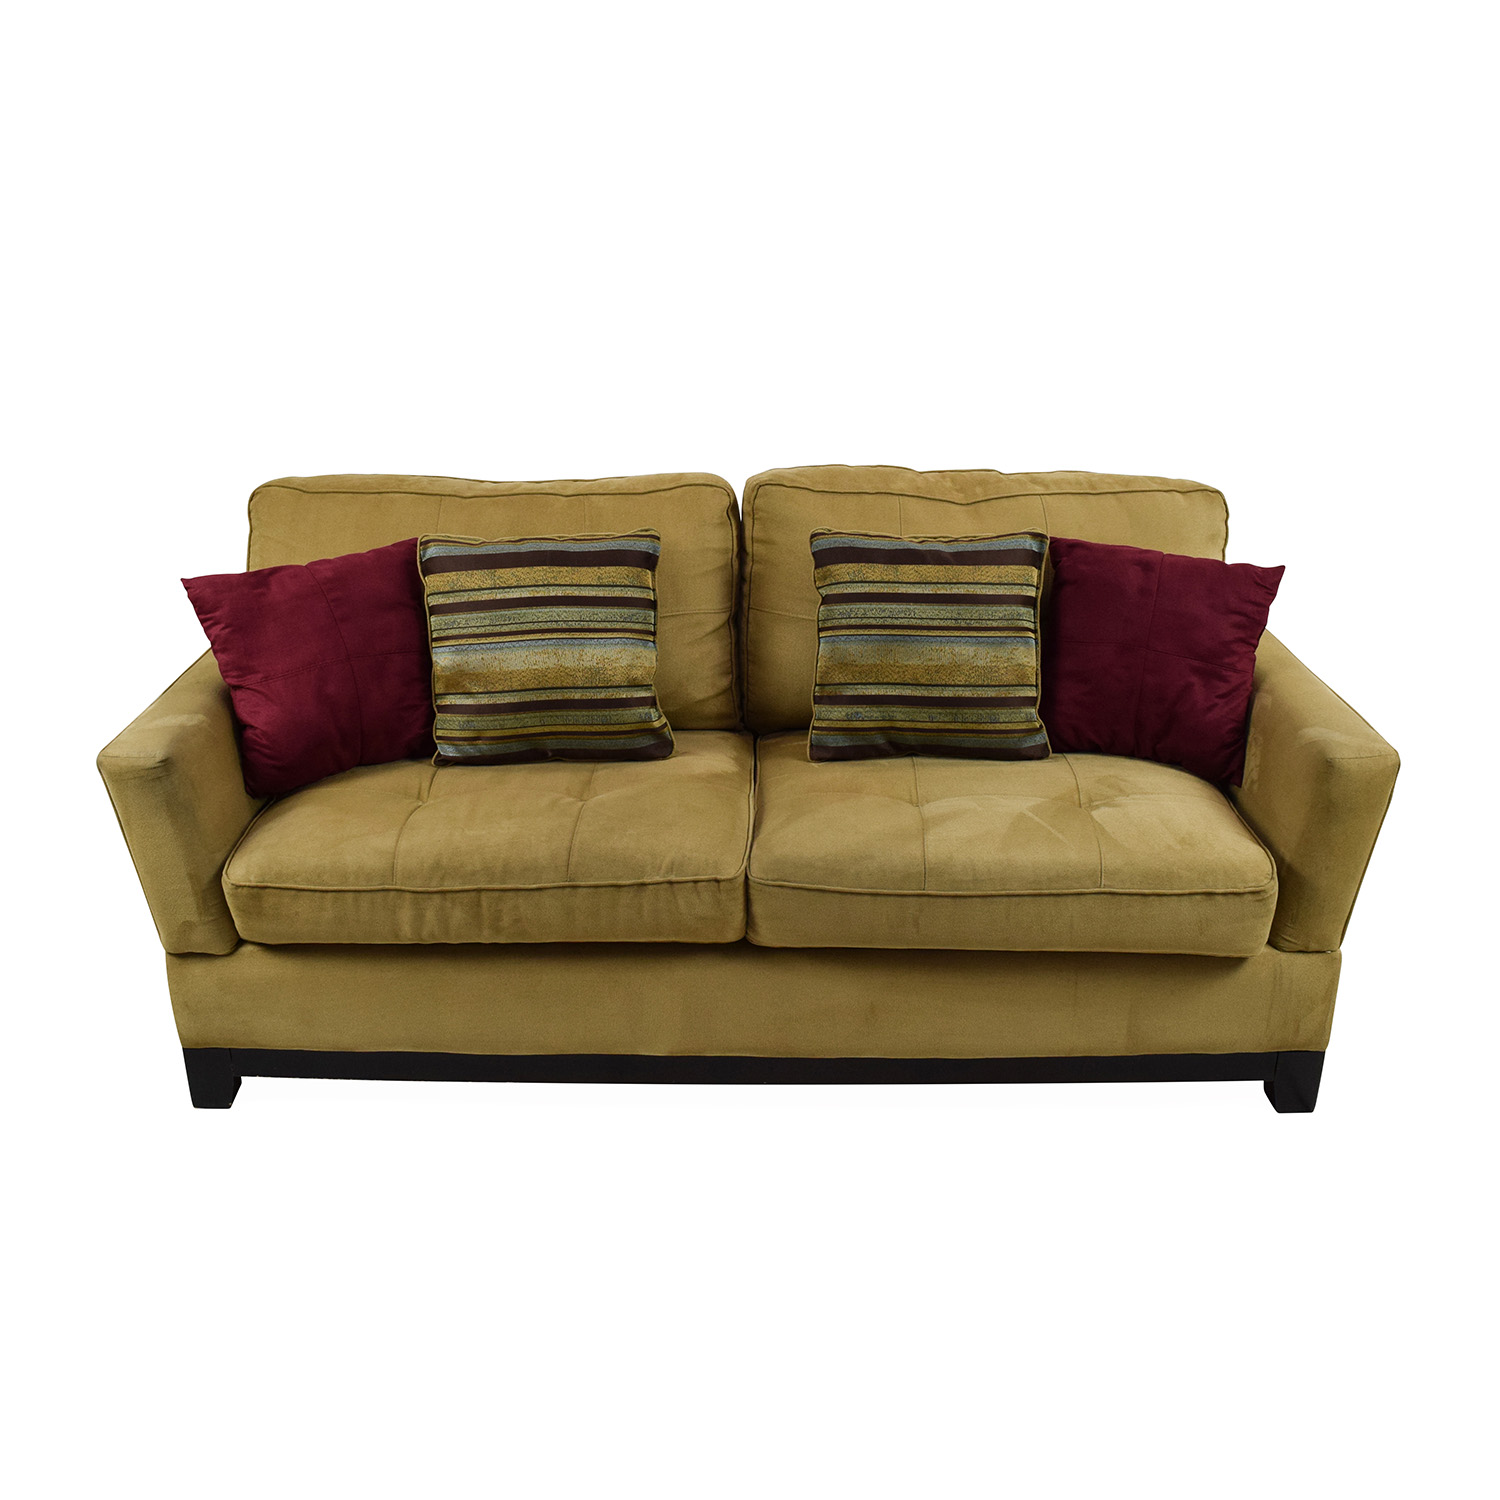 jennifer convertibles leather reclining sofa how do i clean my white sofas sectional and